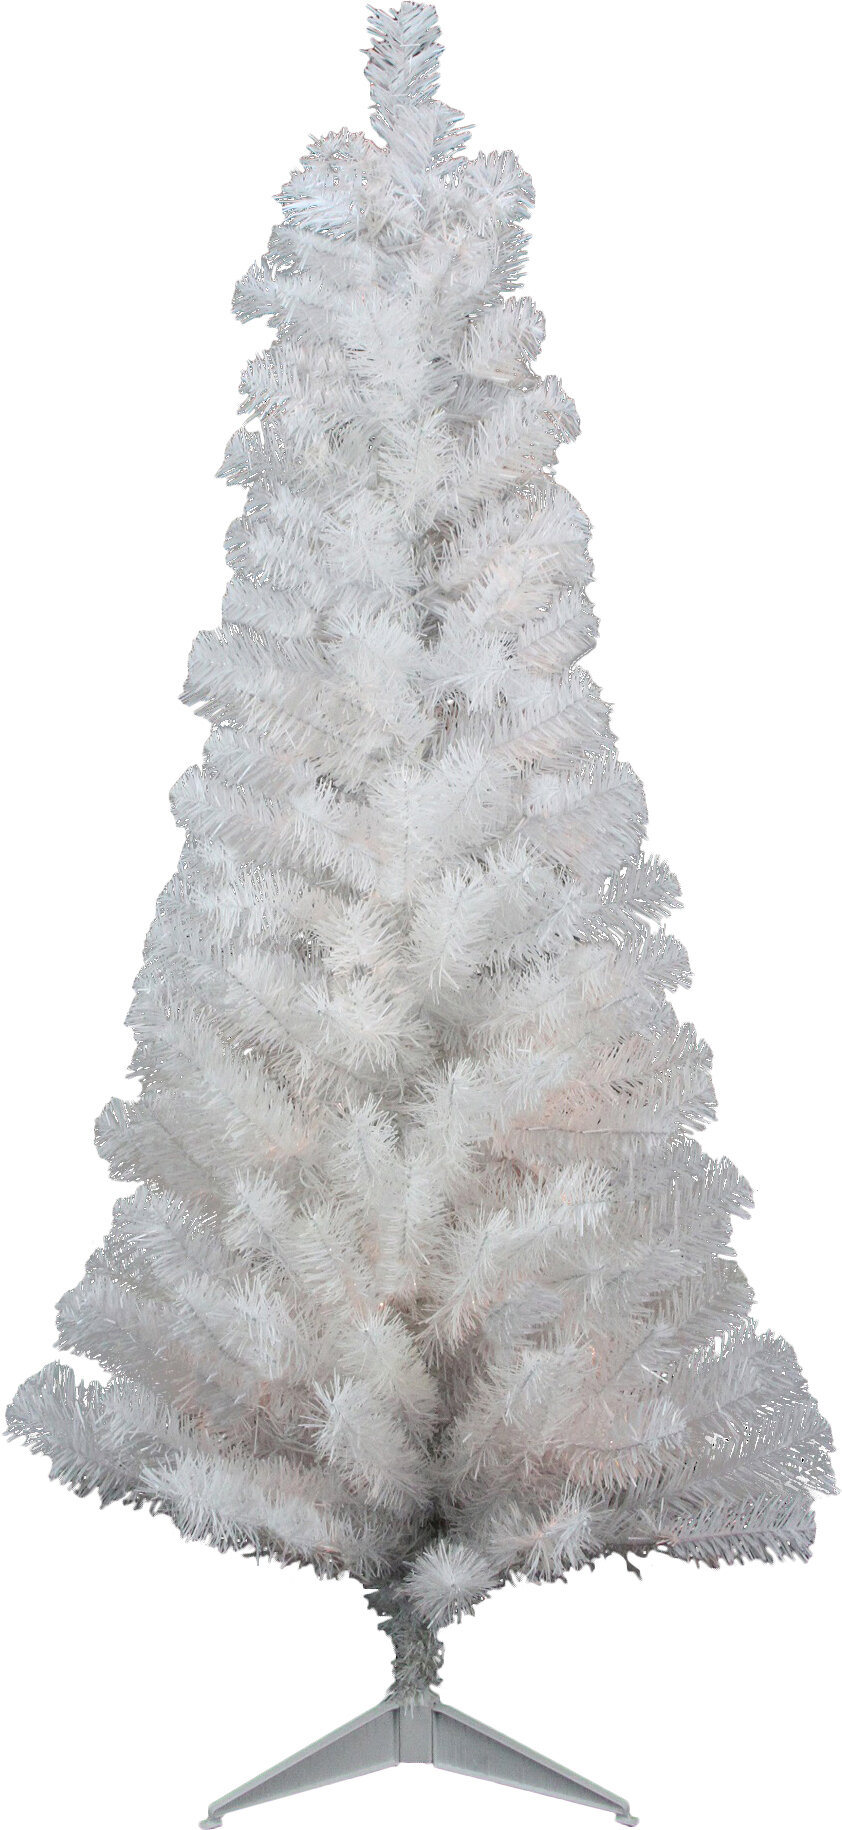 Artificial Christmas Tree Branches.Tinsel Branches 4 White Artificial Christmas Tree